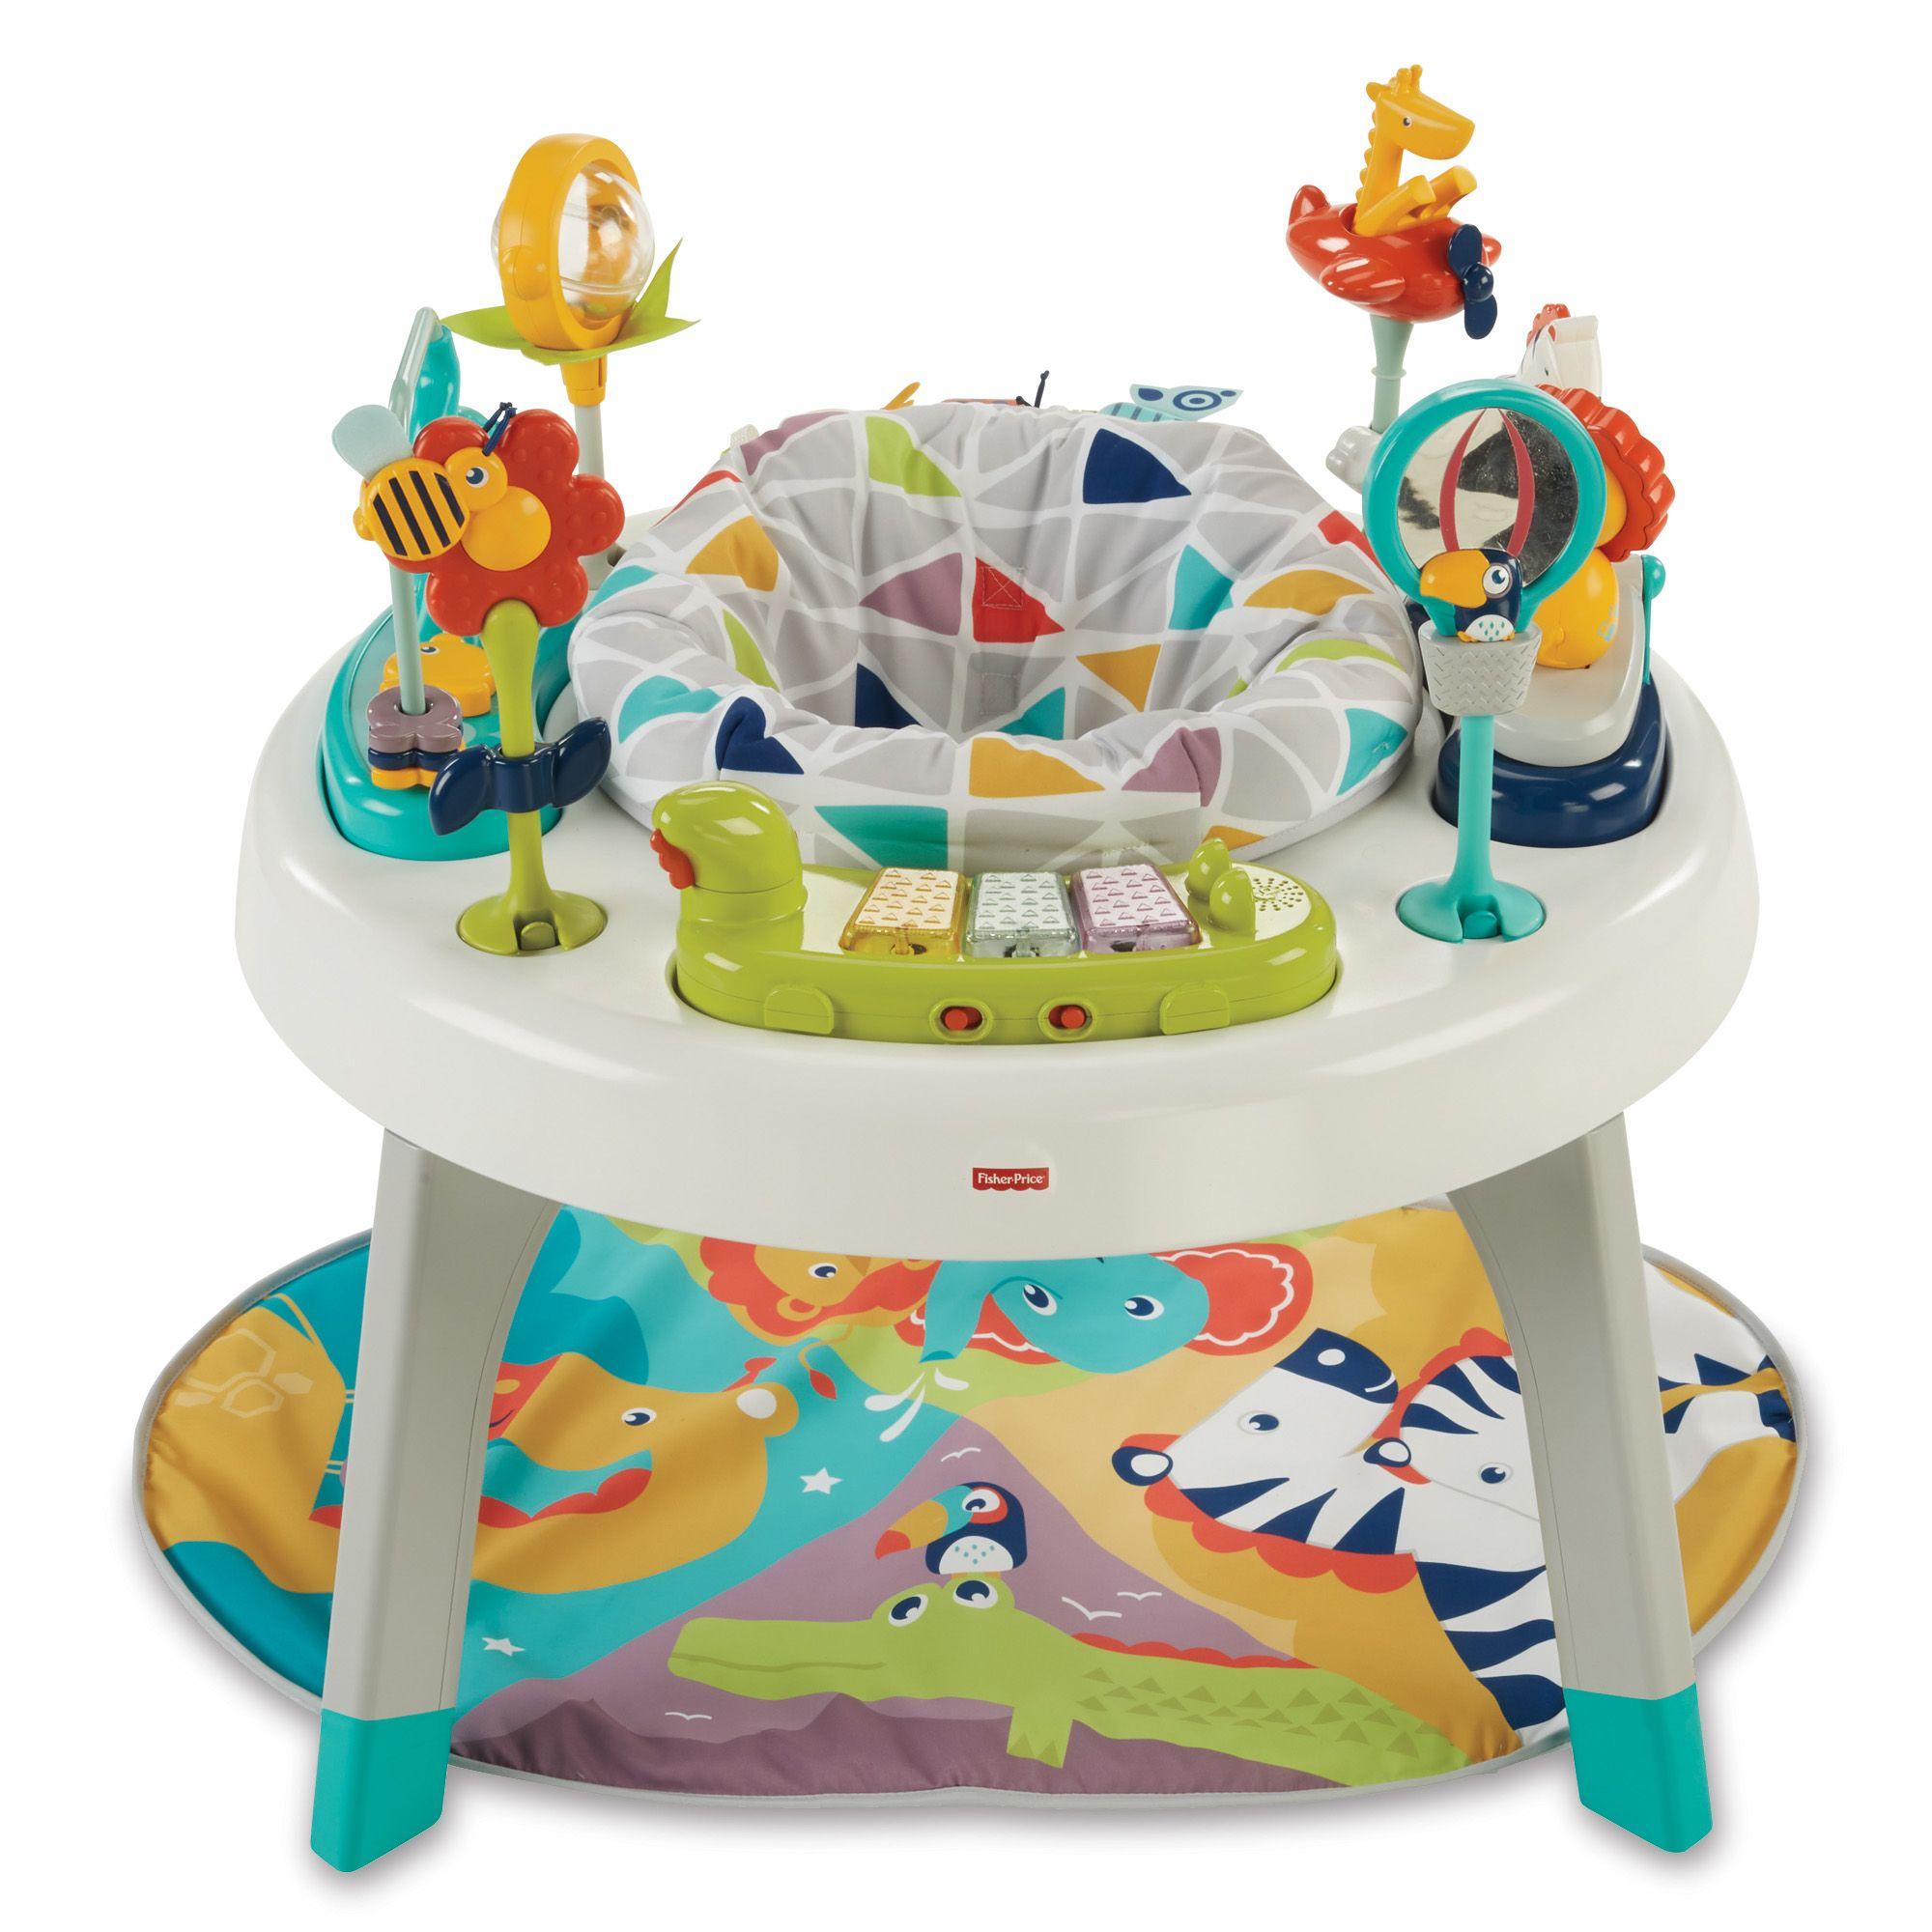 Fisher Price 3 in 1 Sit to Stand Activity Center BABY